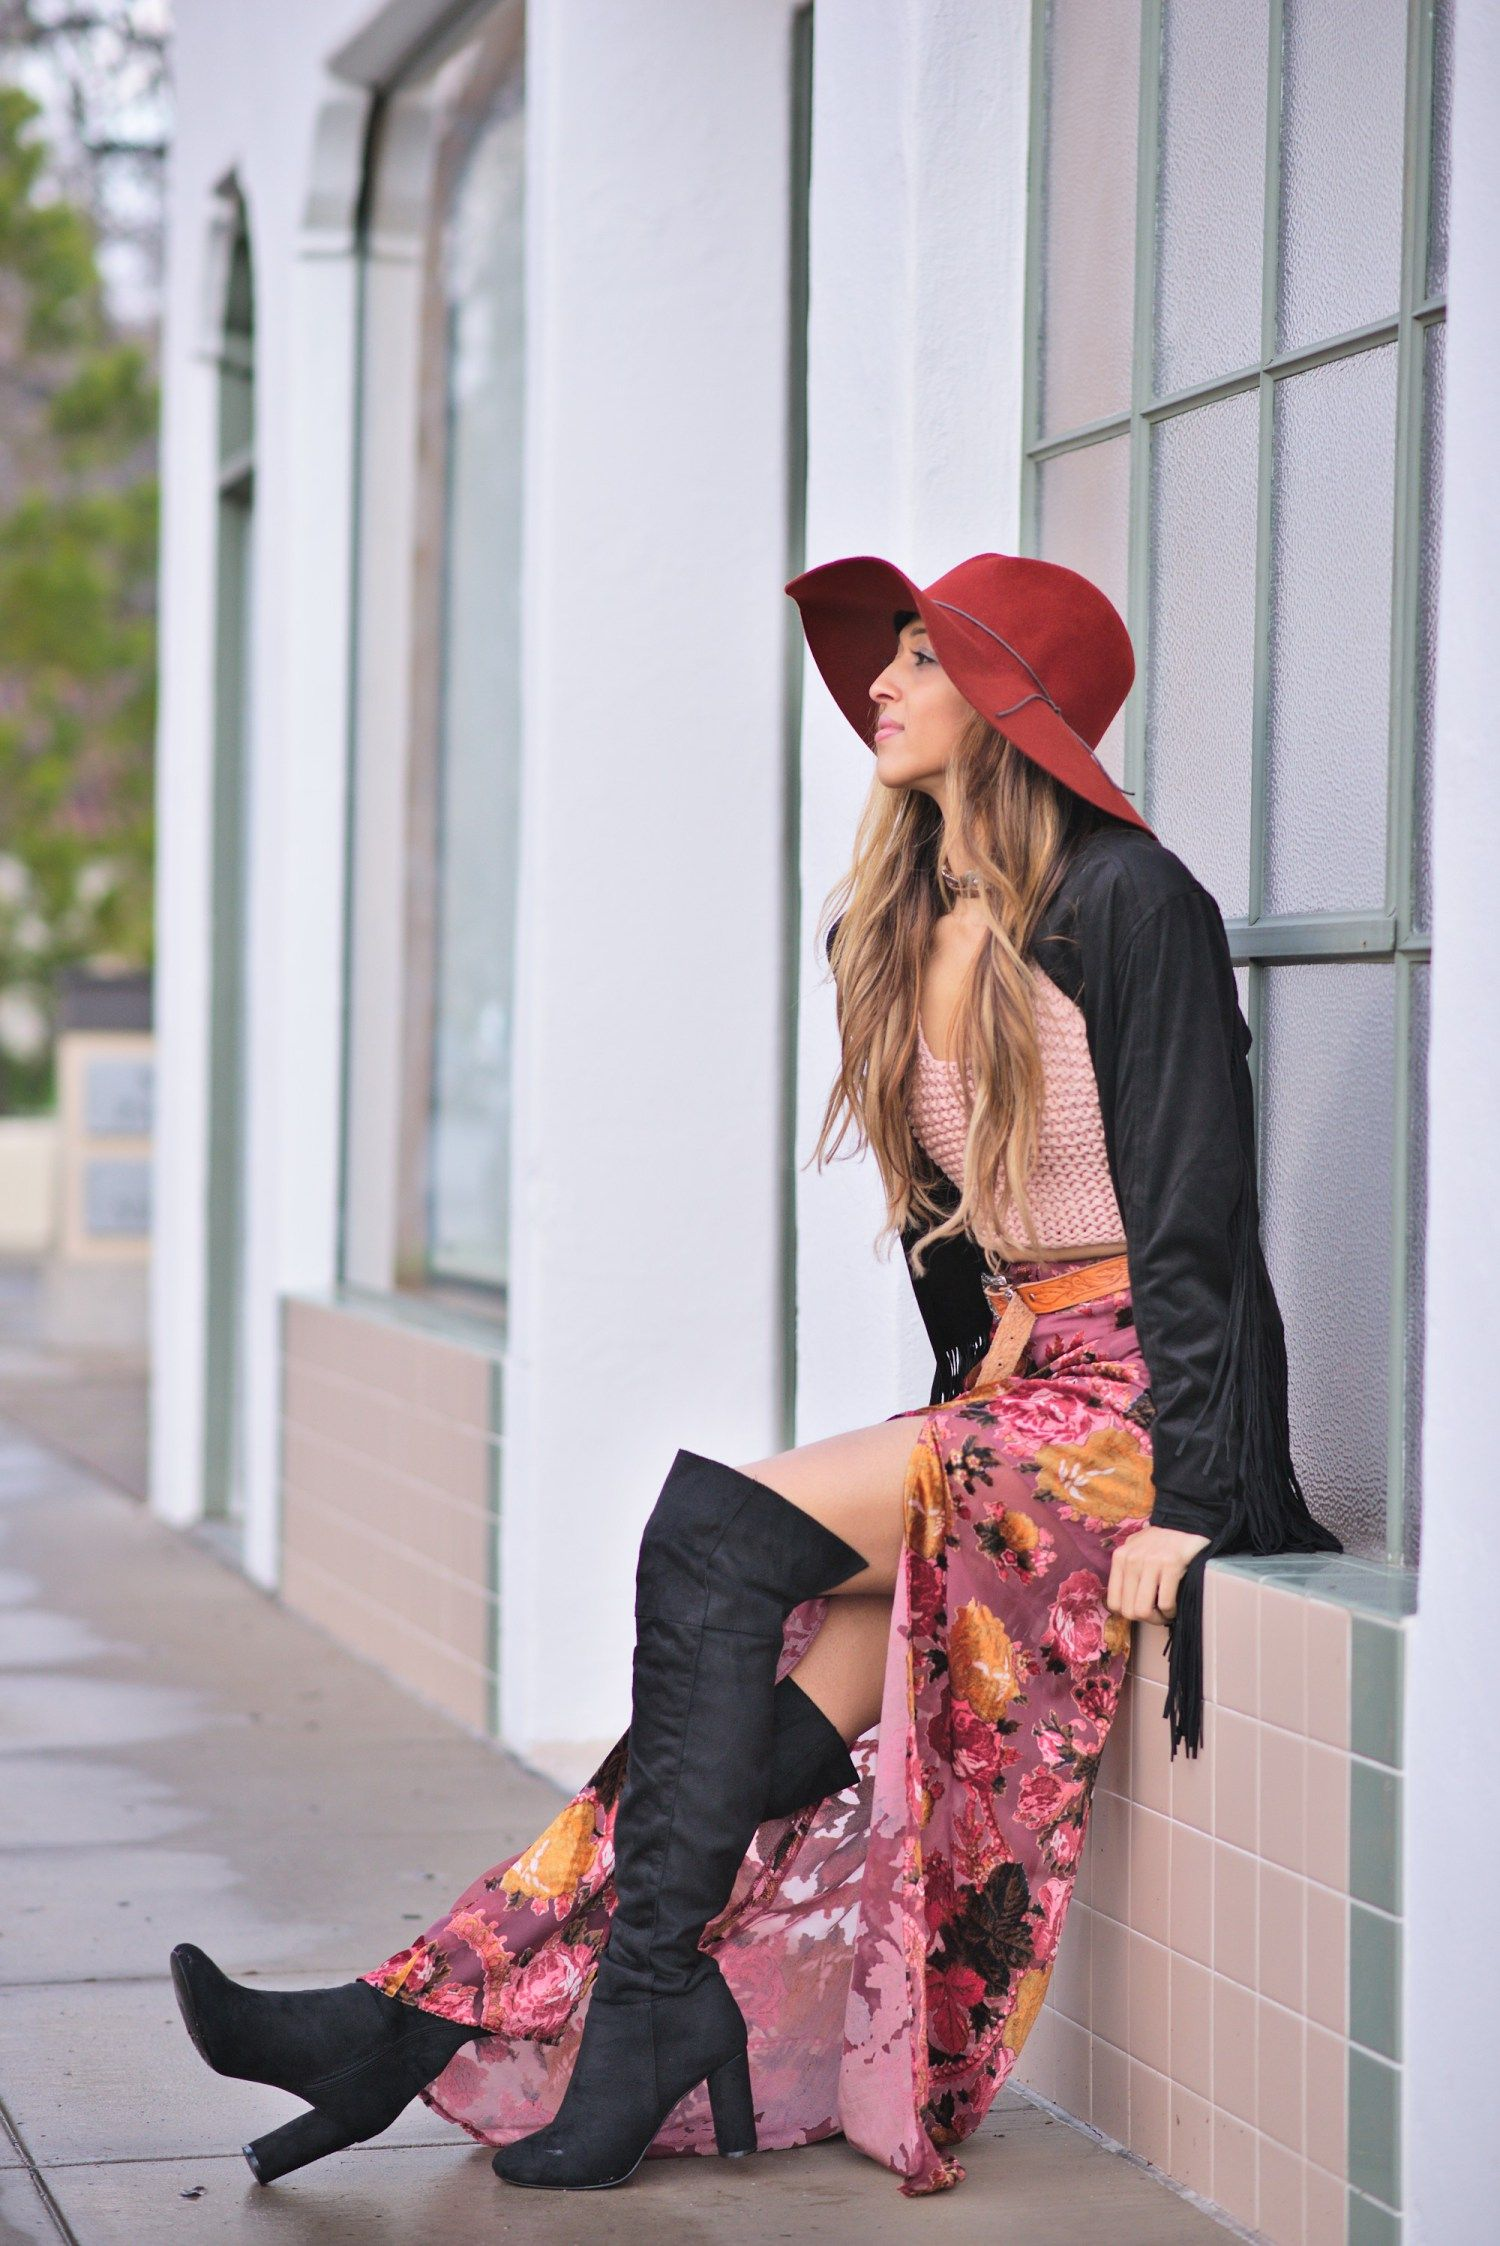 cuppajyo-sanfrancisco-fashion-lifestyle-blogger-velvet-petals-maxi-skirt-accents-crochet-fringe-jacket-bohochic-8